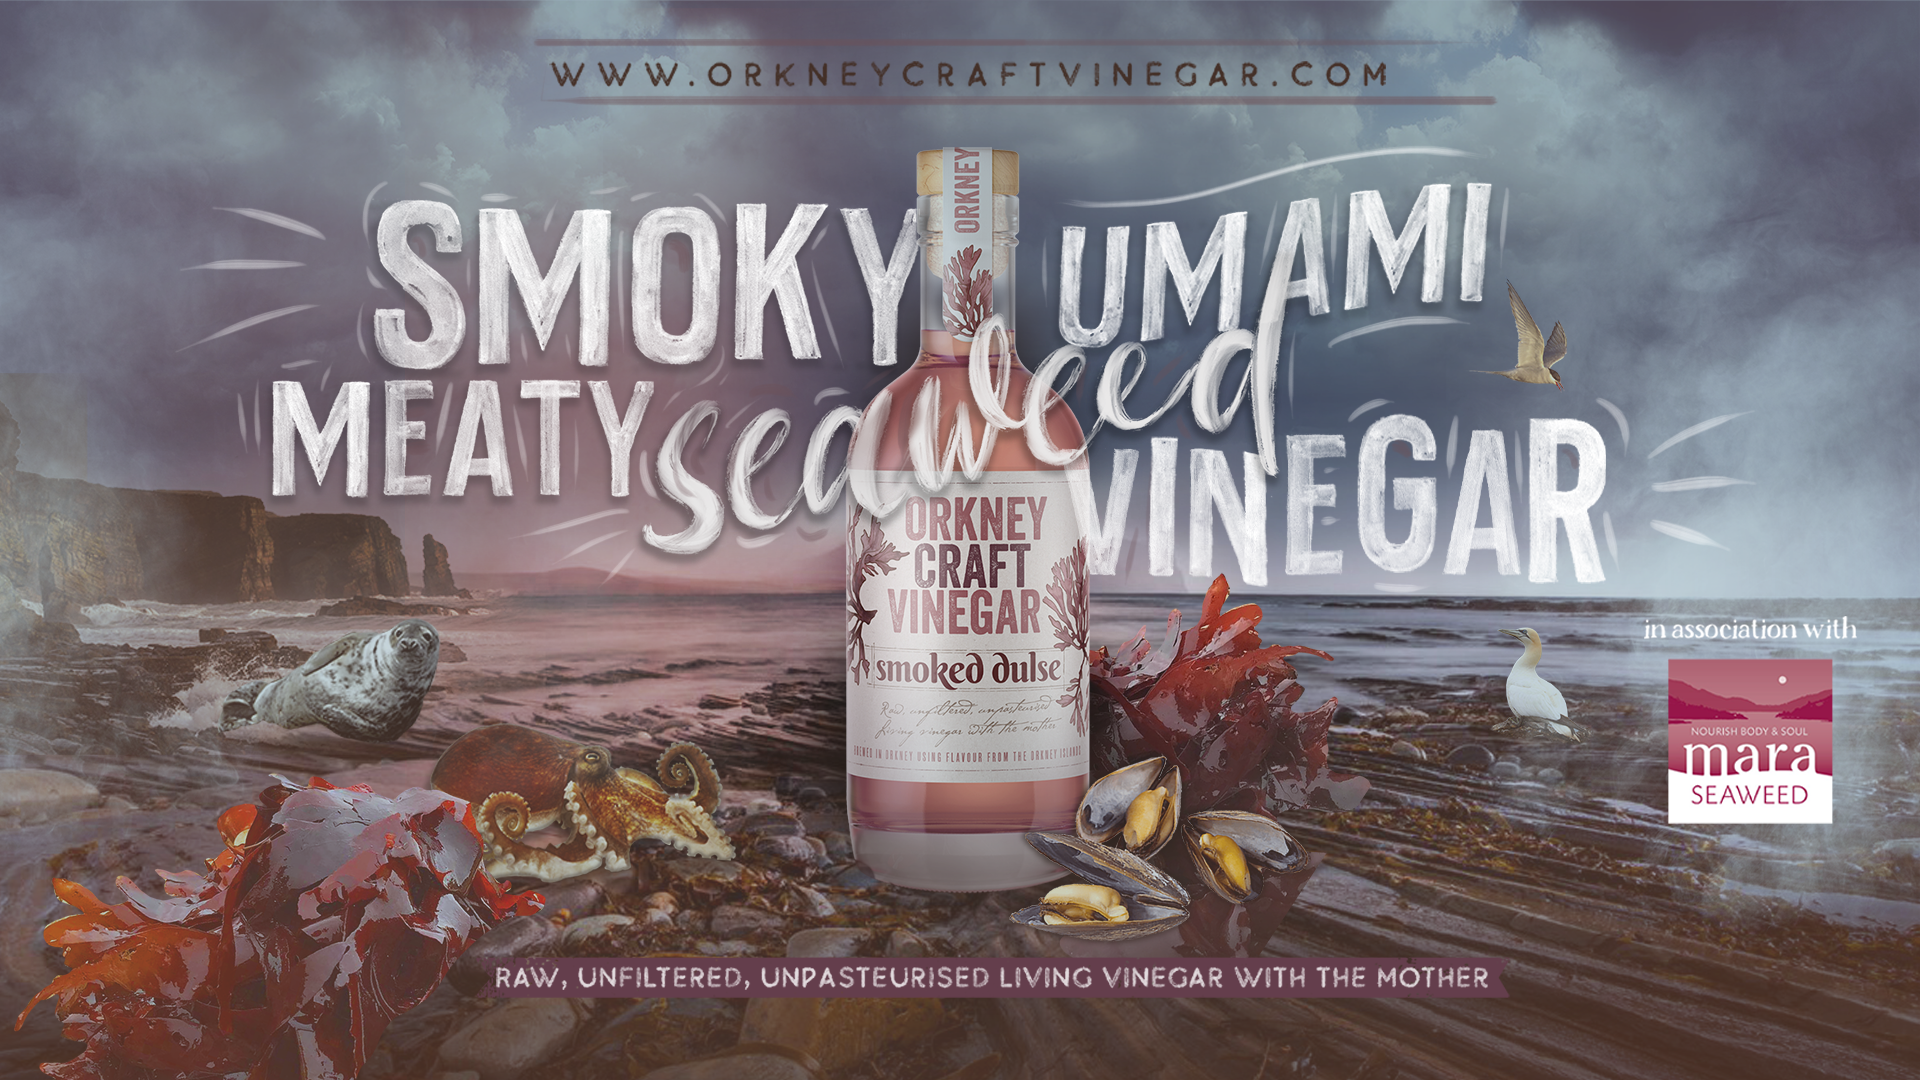 Smoked Dulse Vinegar from Orkney Craft Vinegar